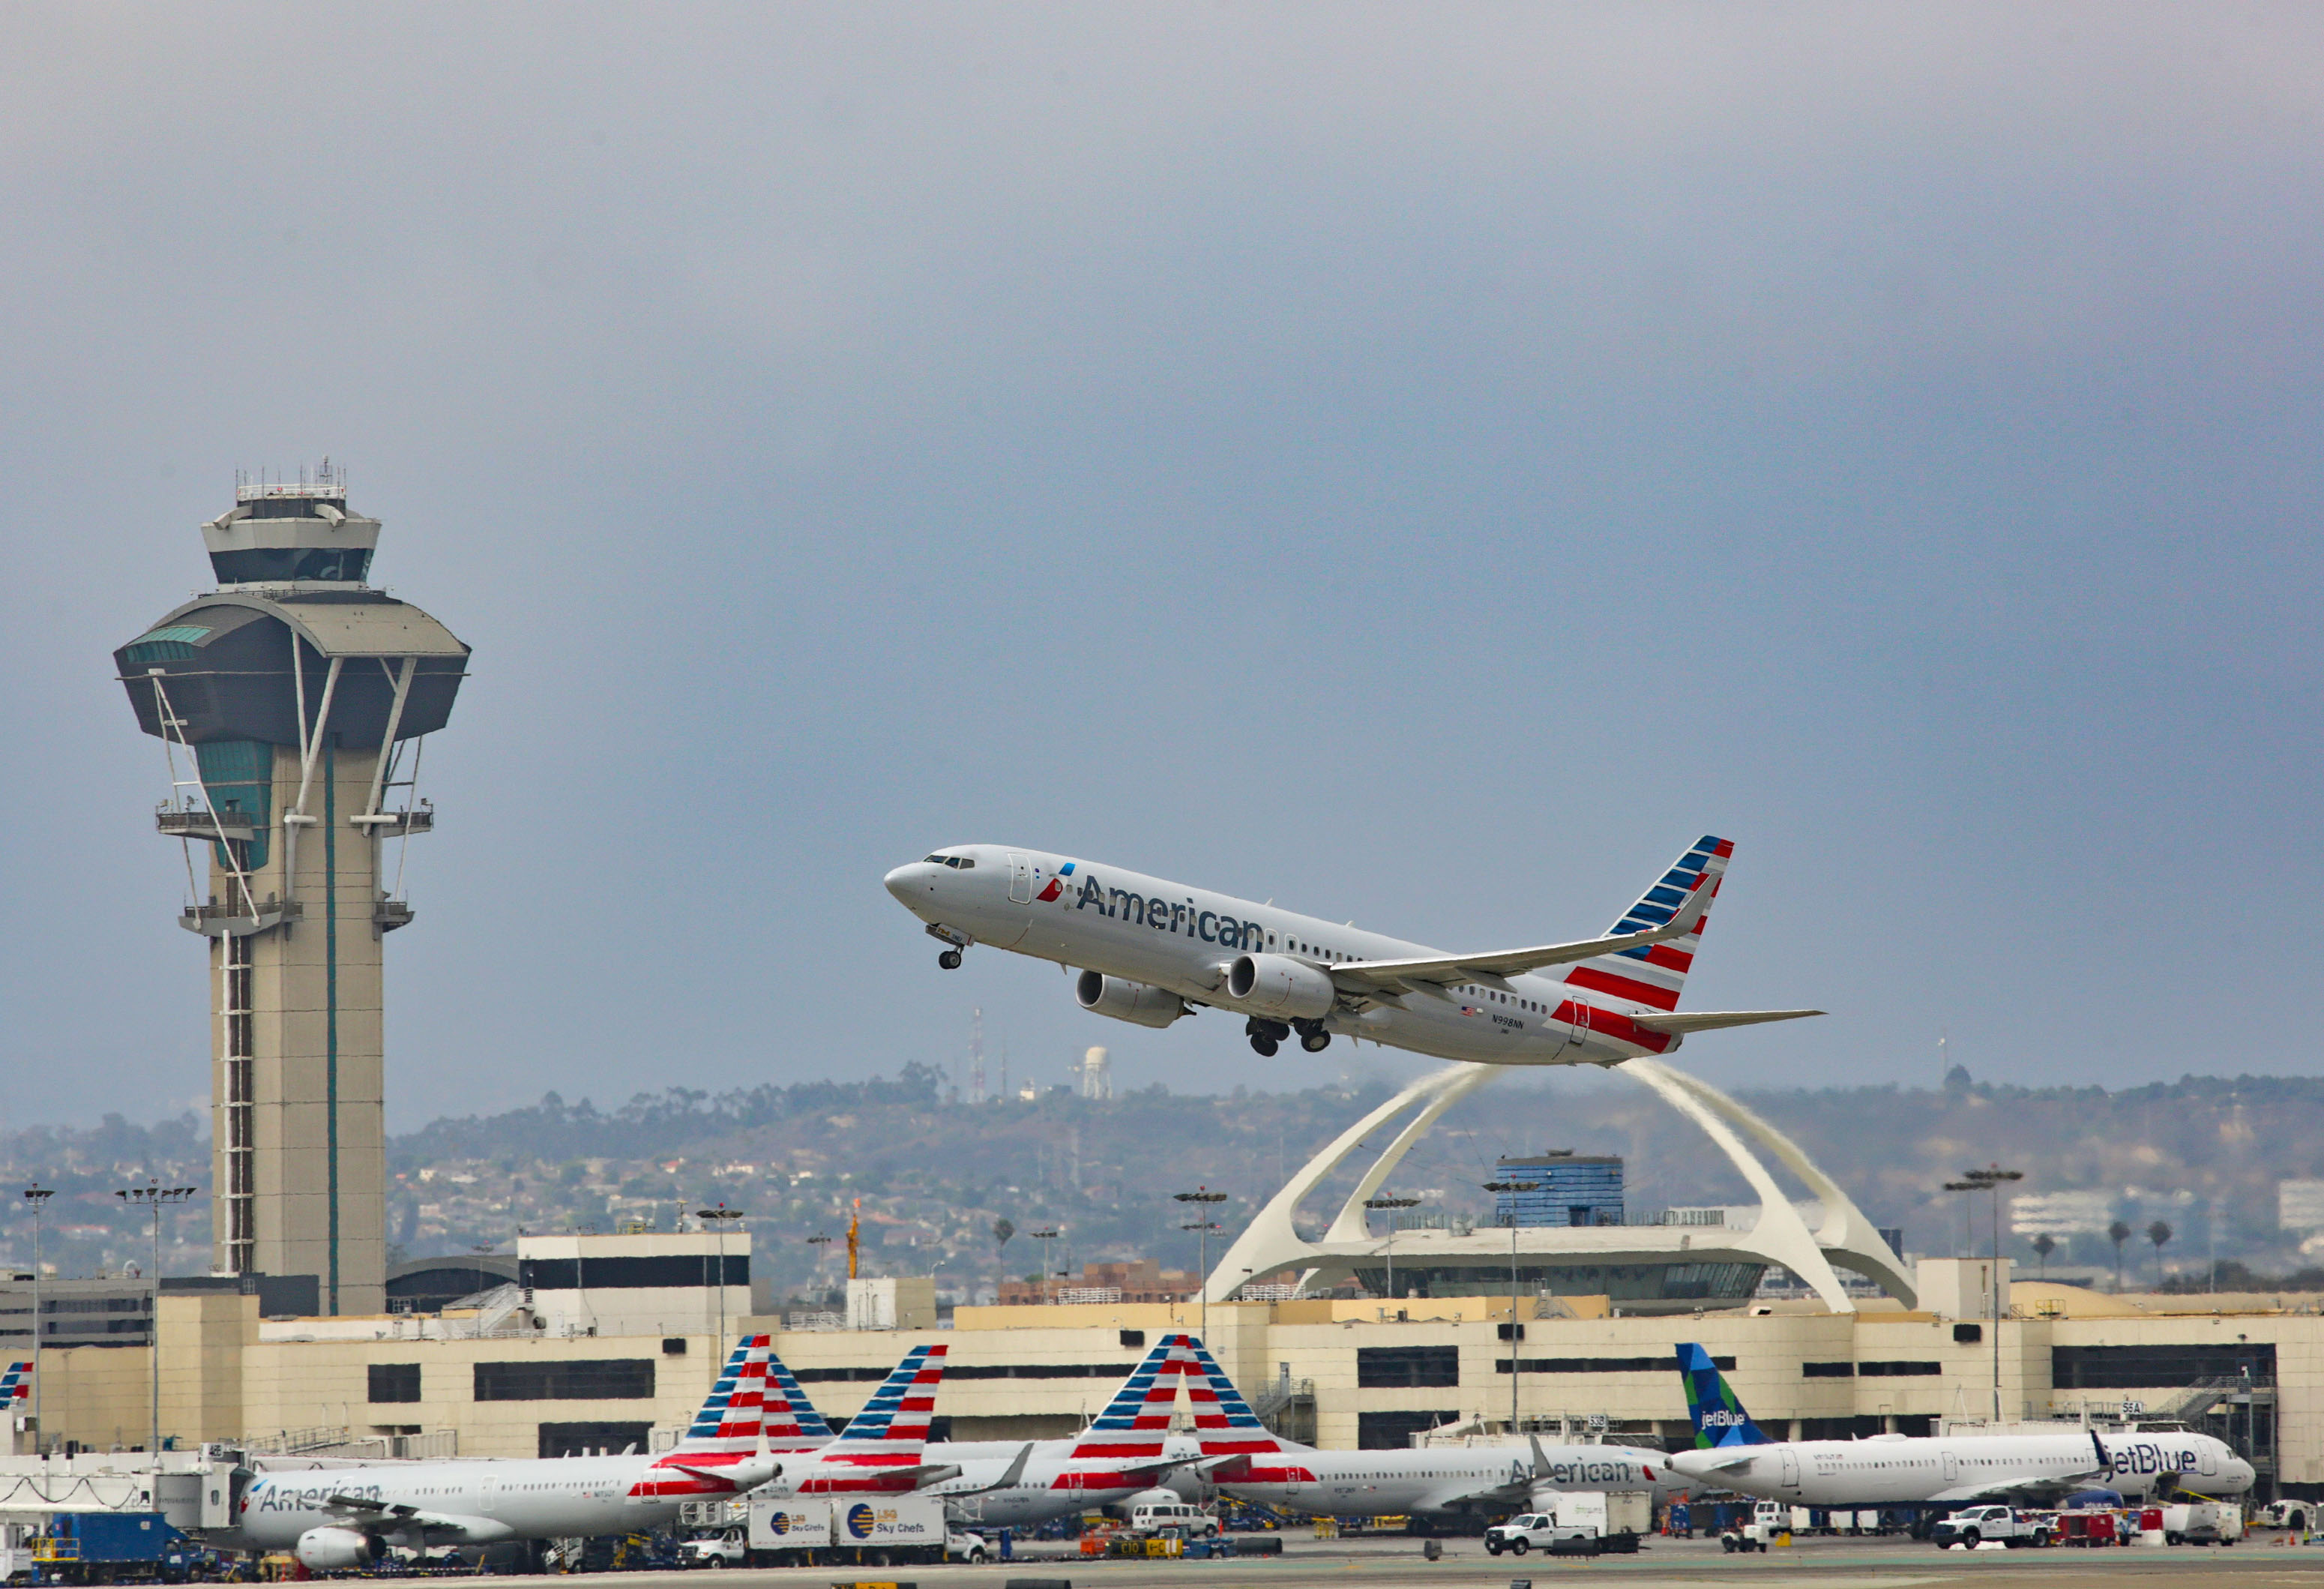 American Airlines Boeing 737 lands at Los angeles International Airport on July 30, 2017 in Los Angeles, California.  (Photo by FG/Bauer-Griffin/GC Images)